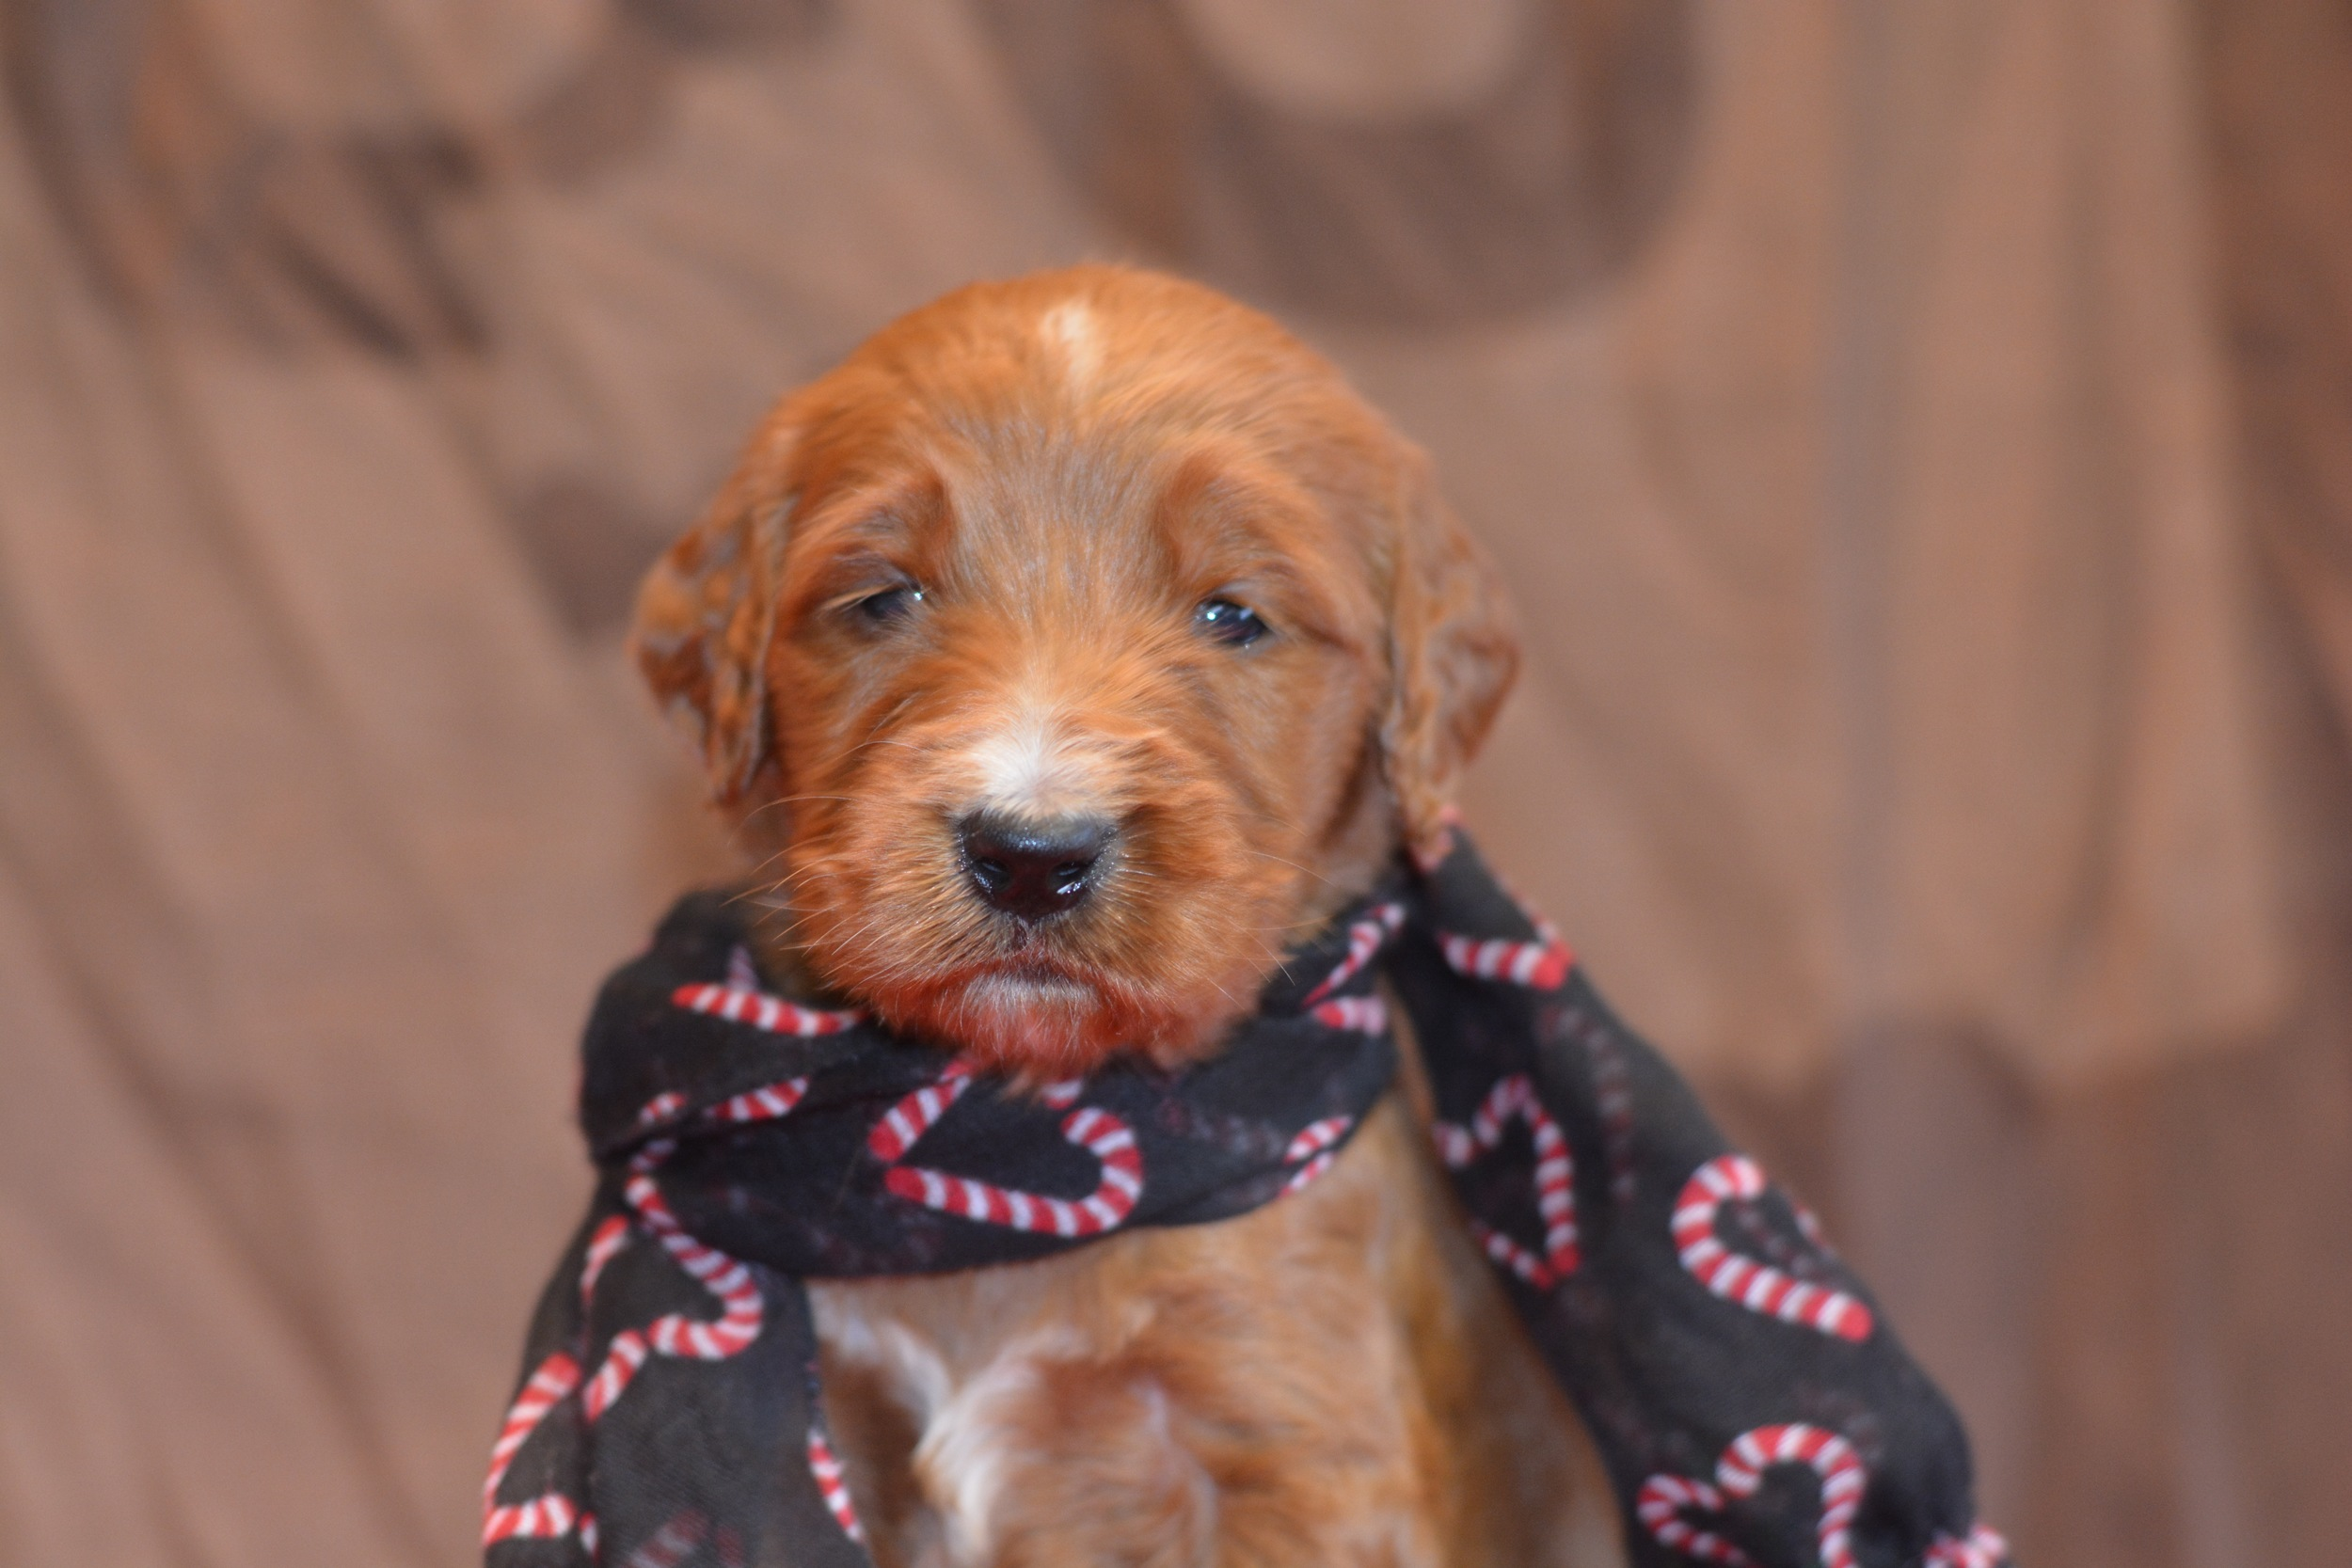 Keep an eye on our blog and available puppy page for updates. We are accepting deposits on all litters. They go fast. Call Dawn 937-253-0379 or email kareawaykennels@yahoo.com. our website www.kareawaykennels.com for a whole bunch of other fun stuff.